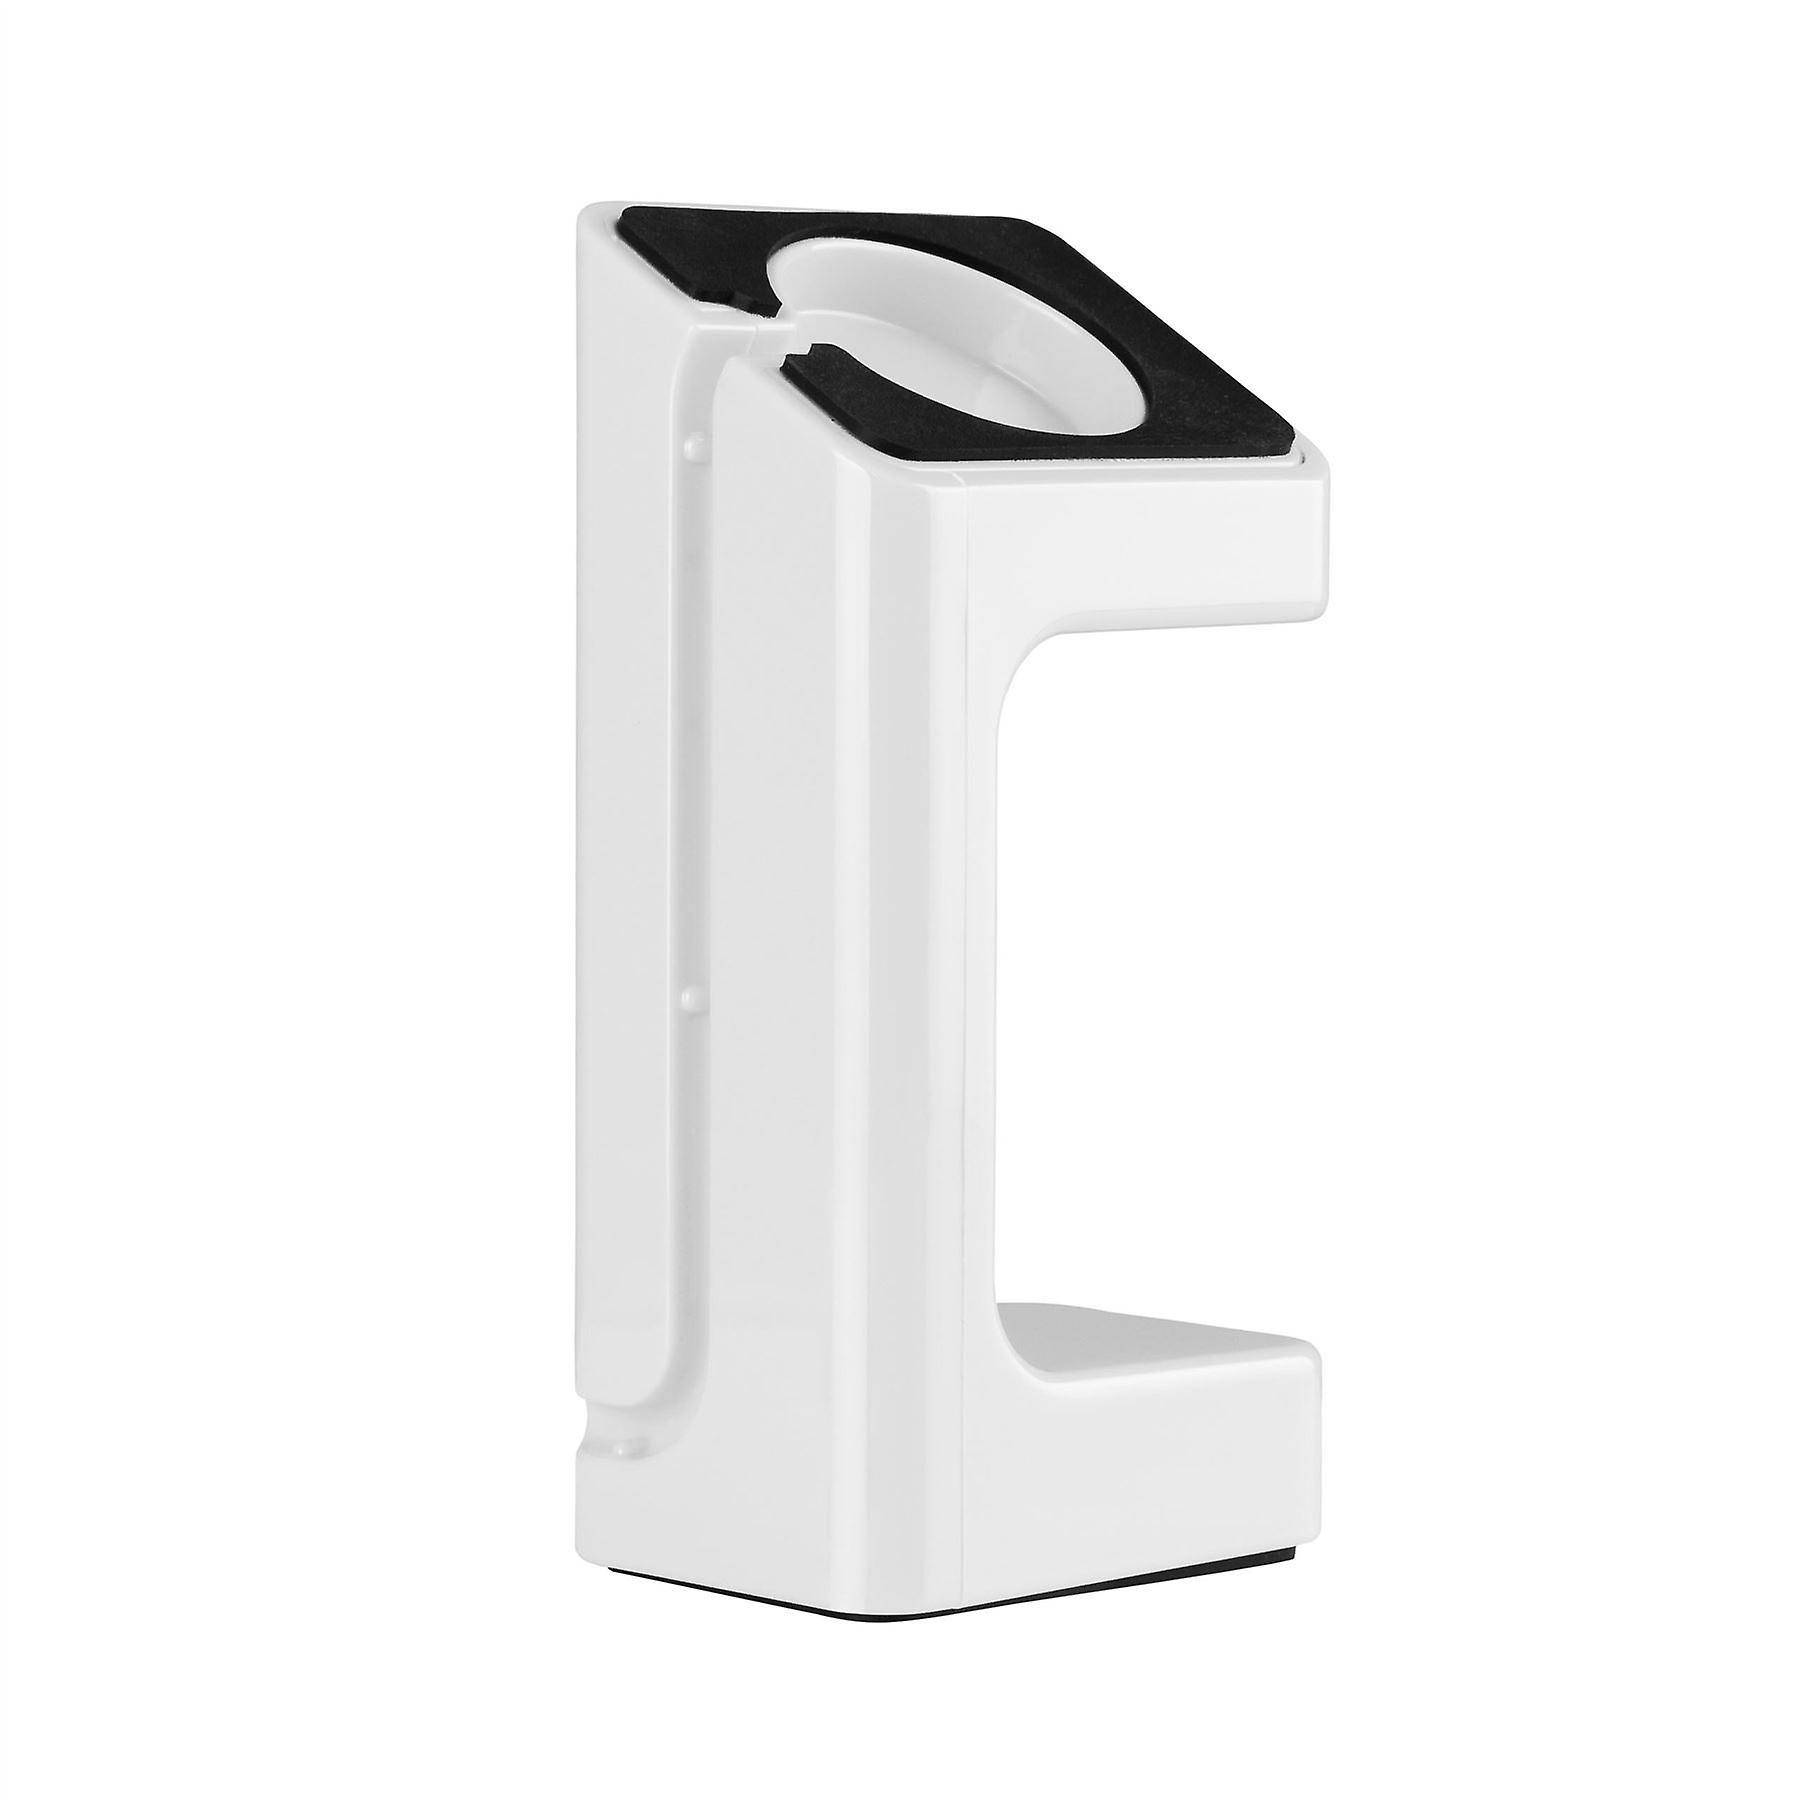 Plastic stand for Apple iWatch - White